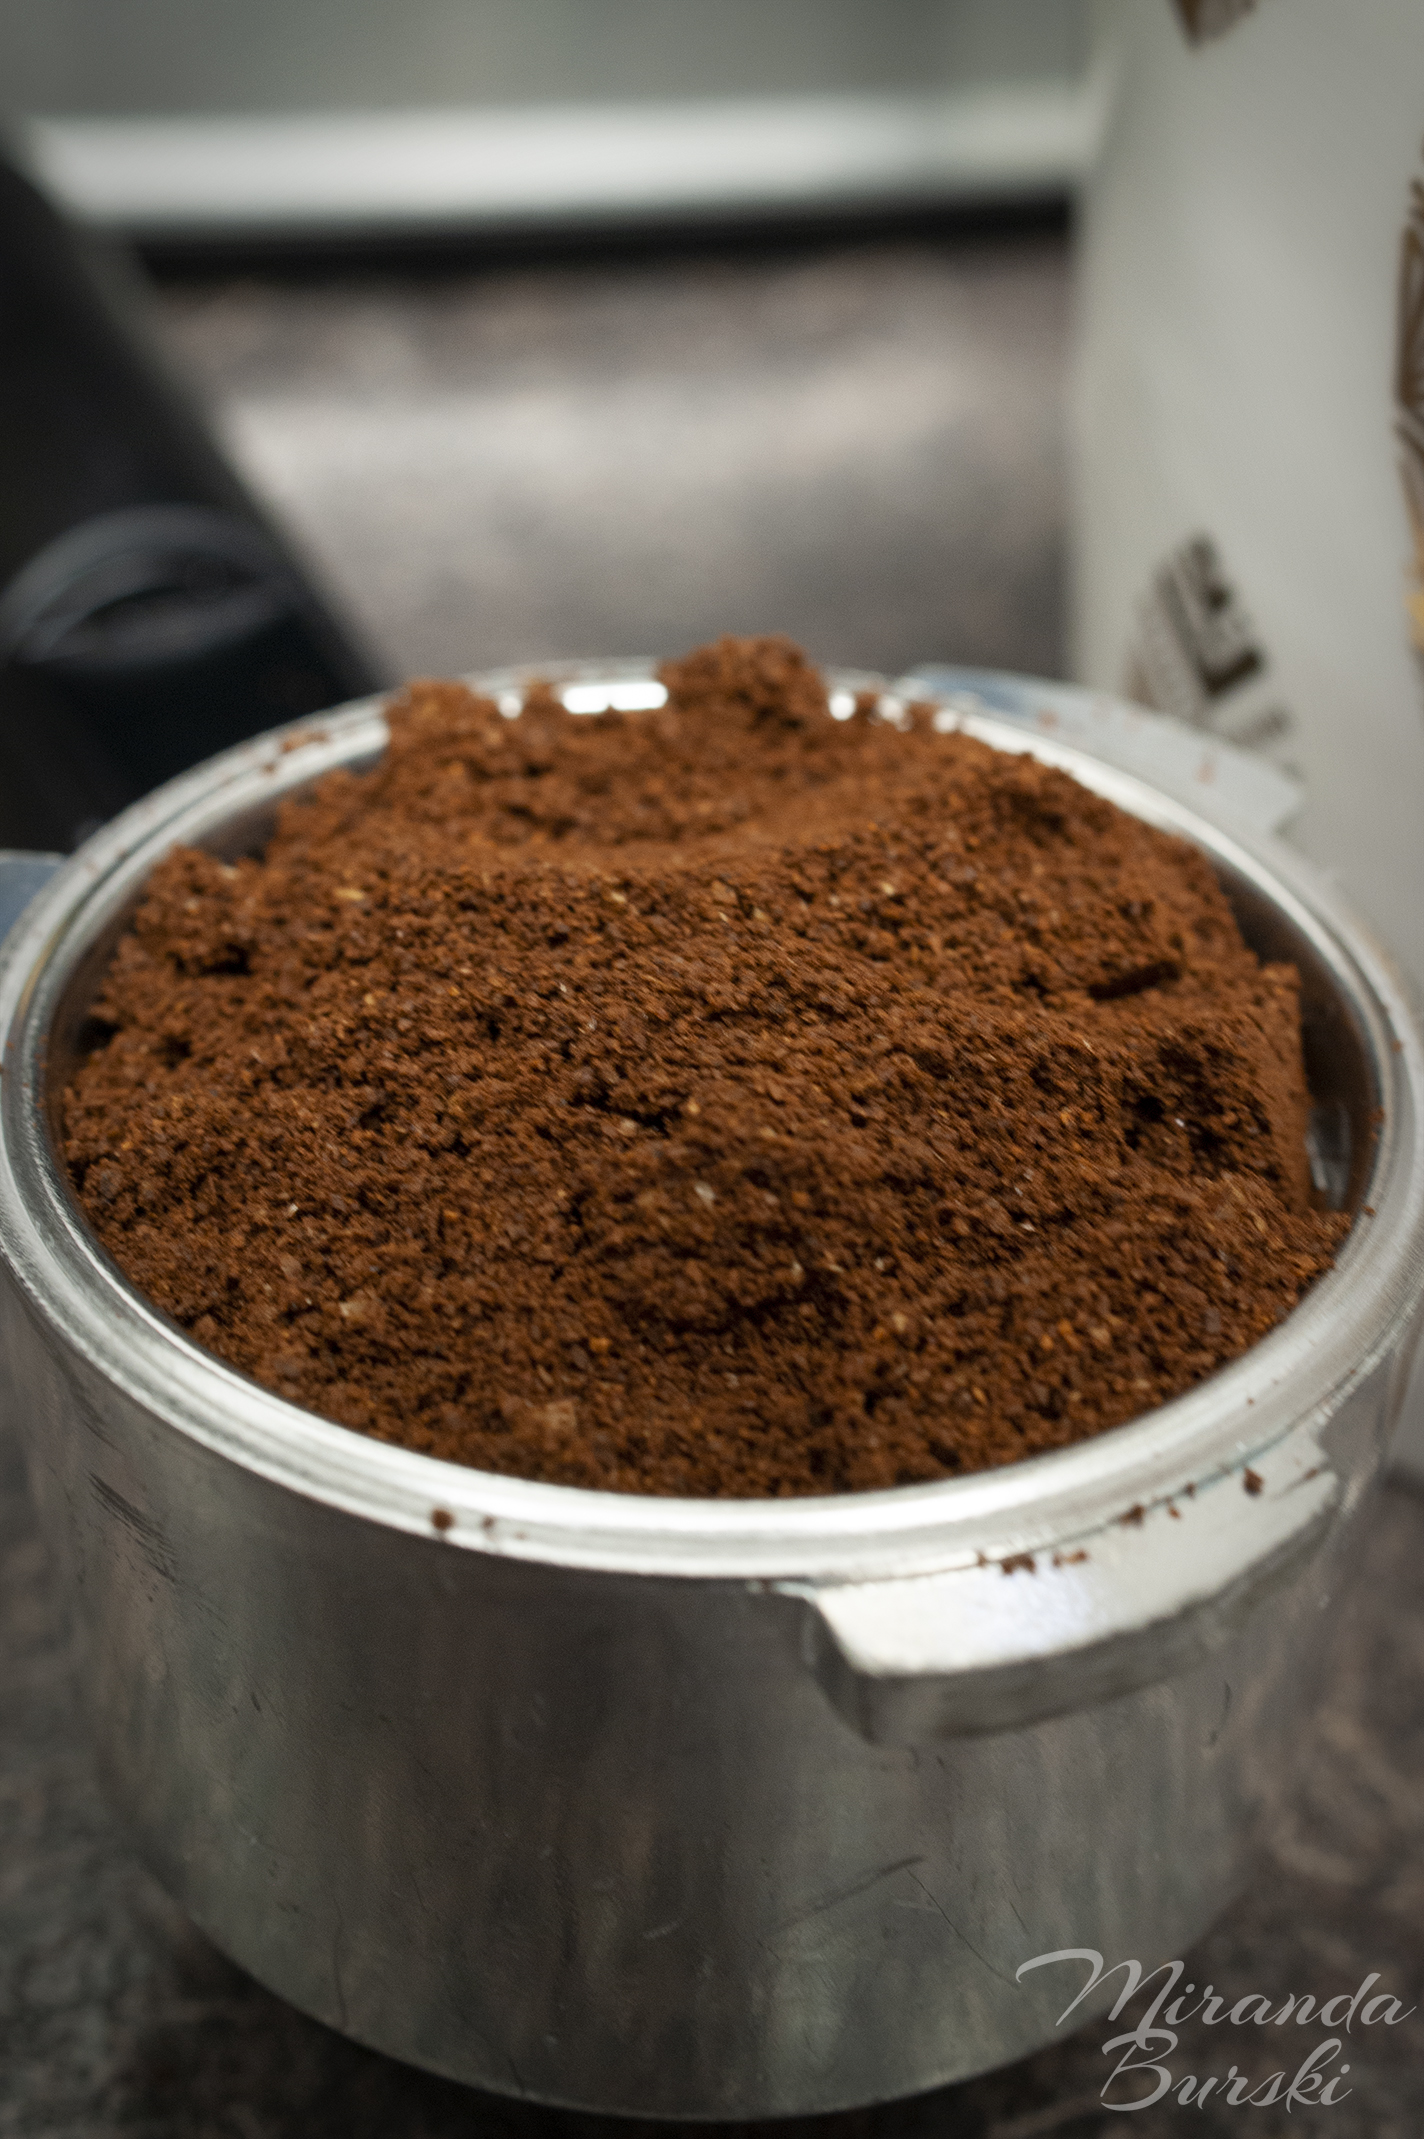 An espresso cup filled with ground coffee beans.